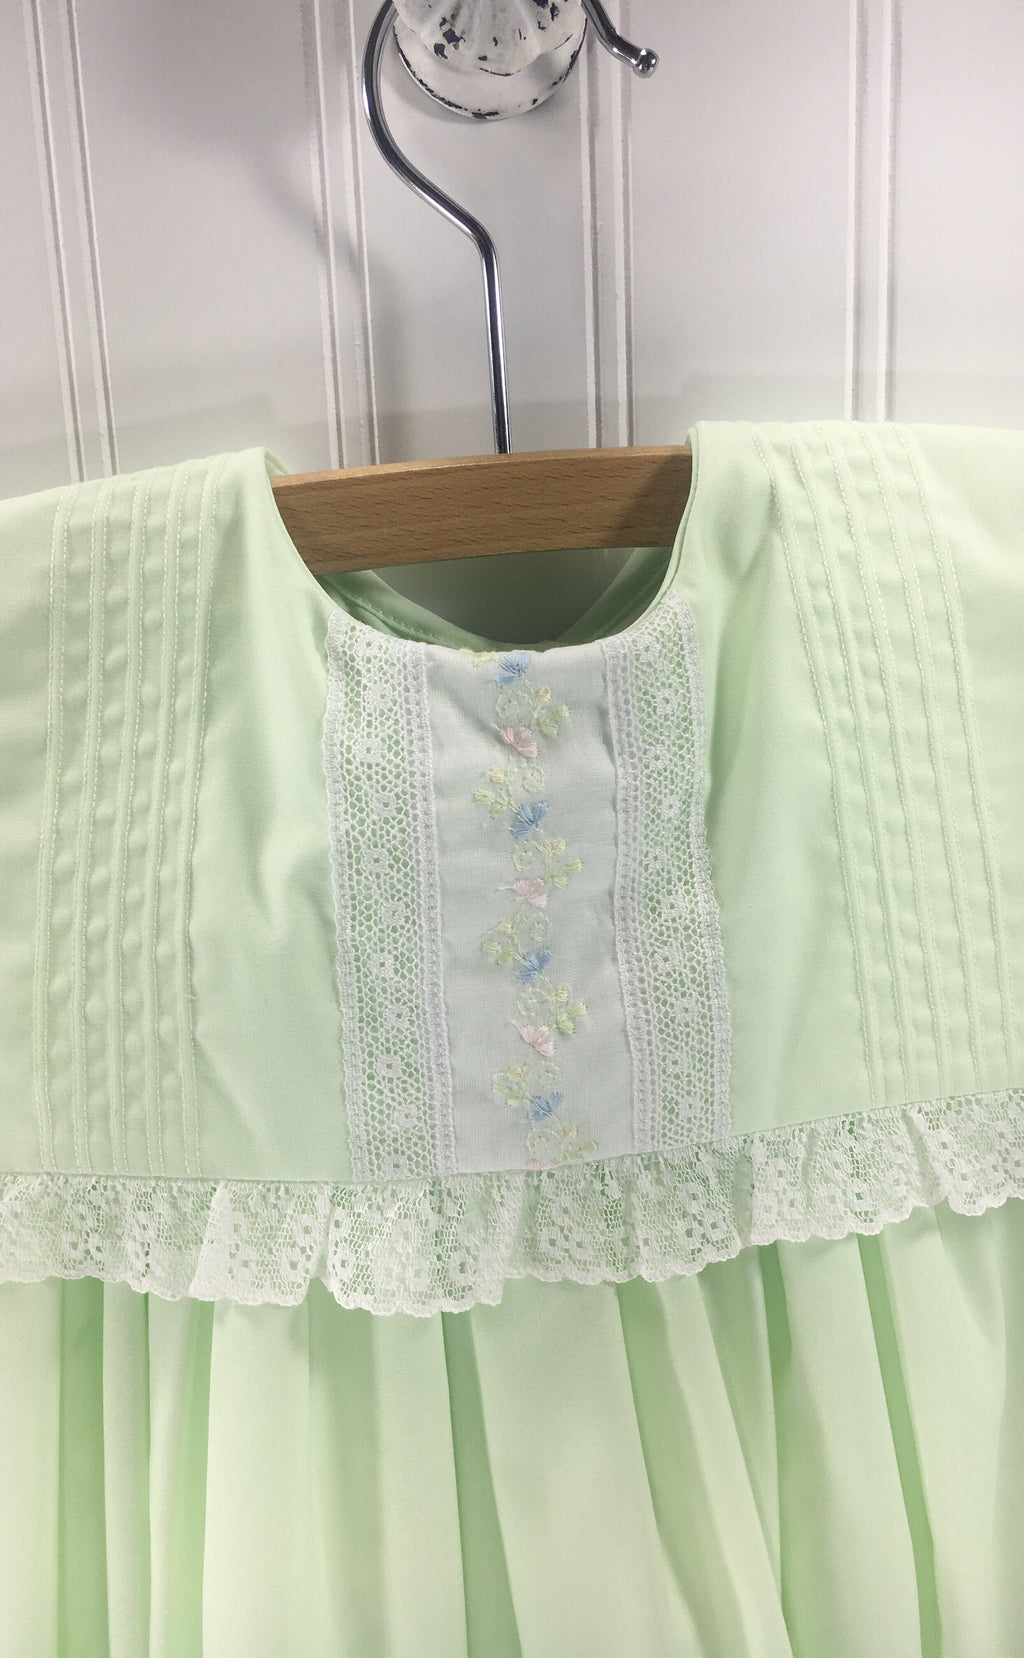 Heirloom Sleeveless Dress Mint with White Insertion